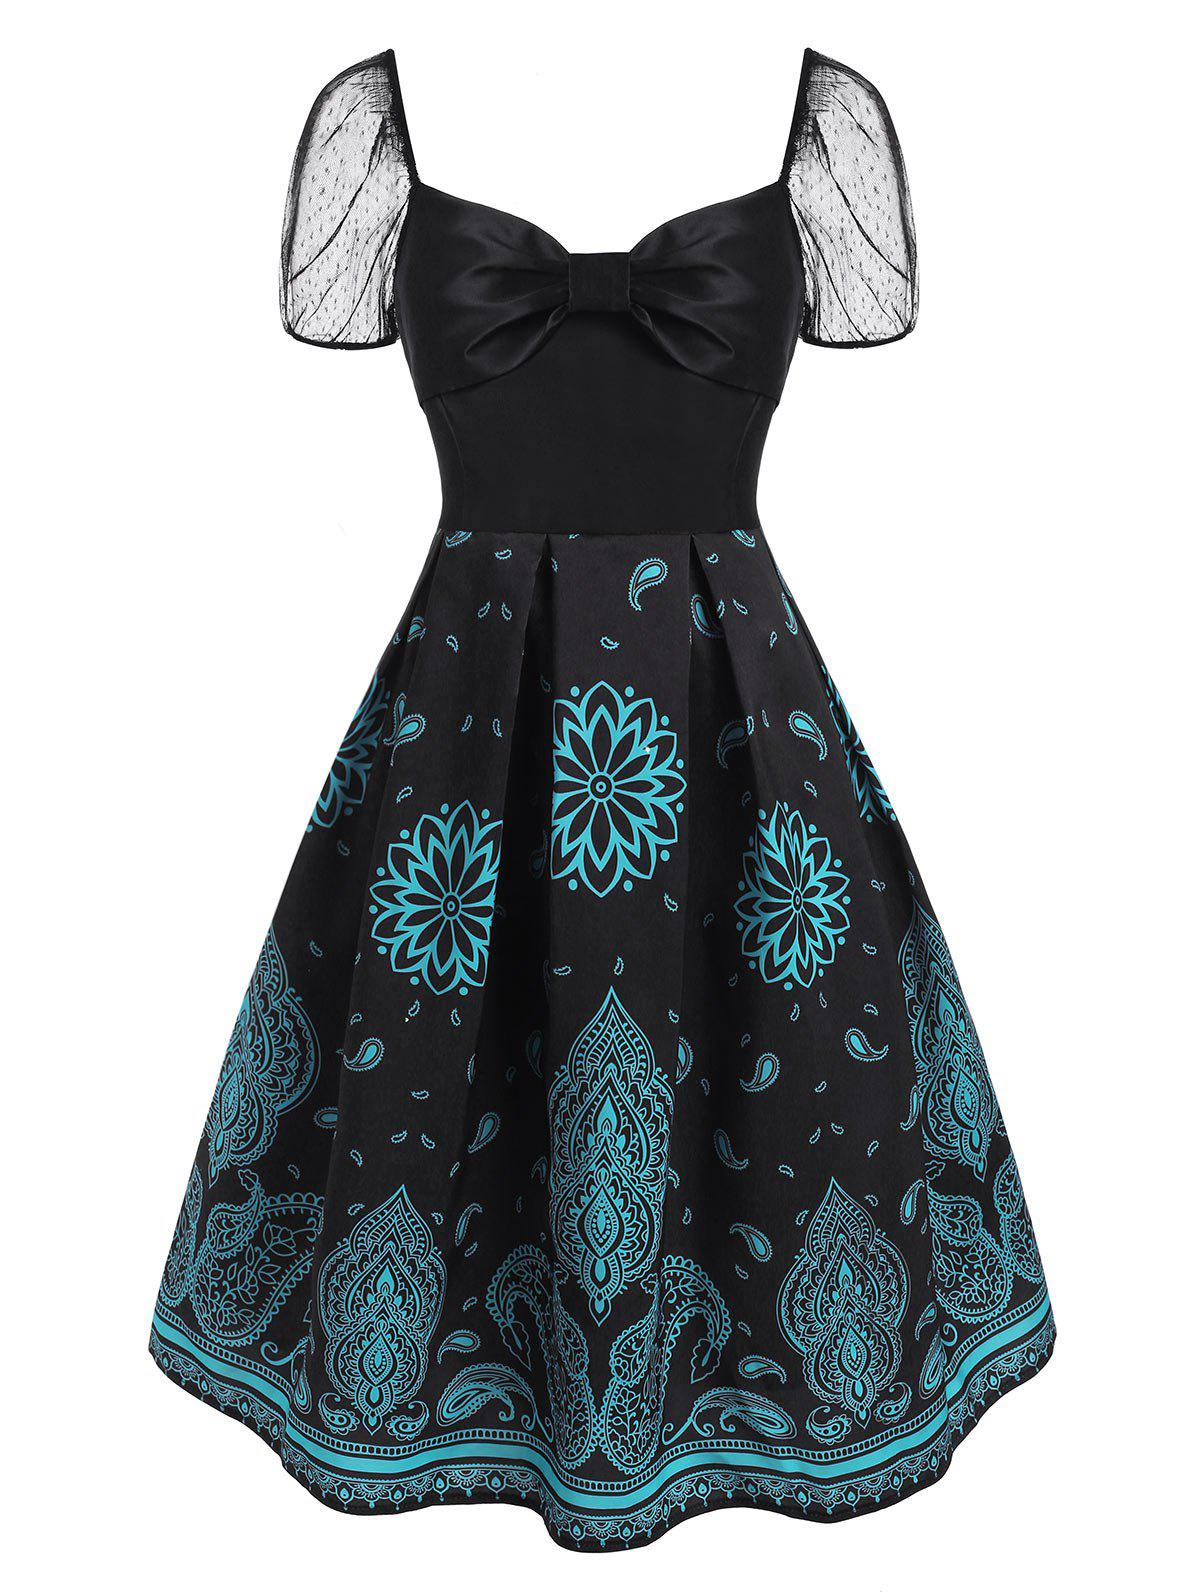 Sale Lace Puff Sleeve Flower Paisley Print Bowknot Dress